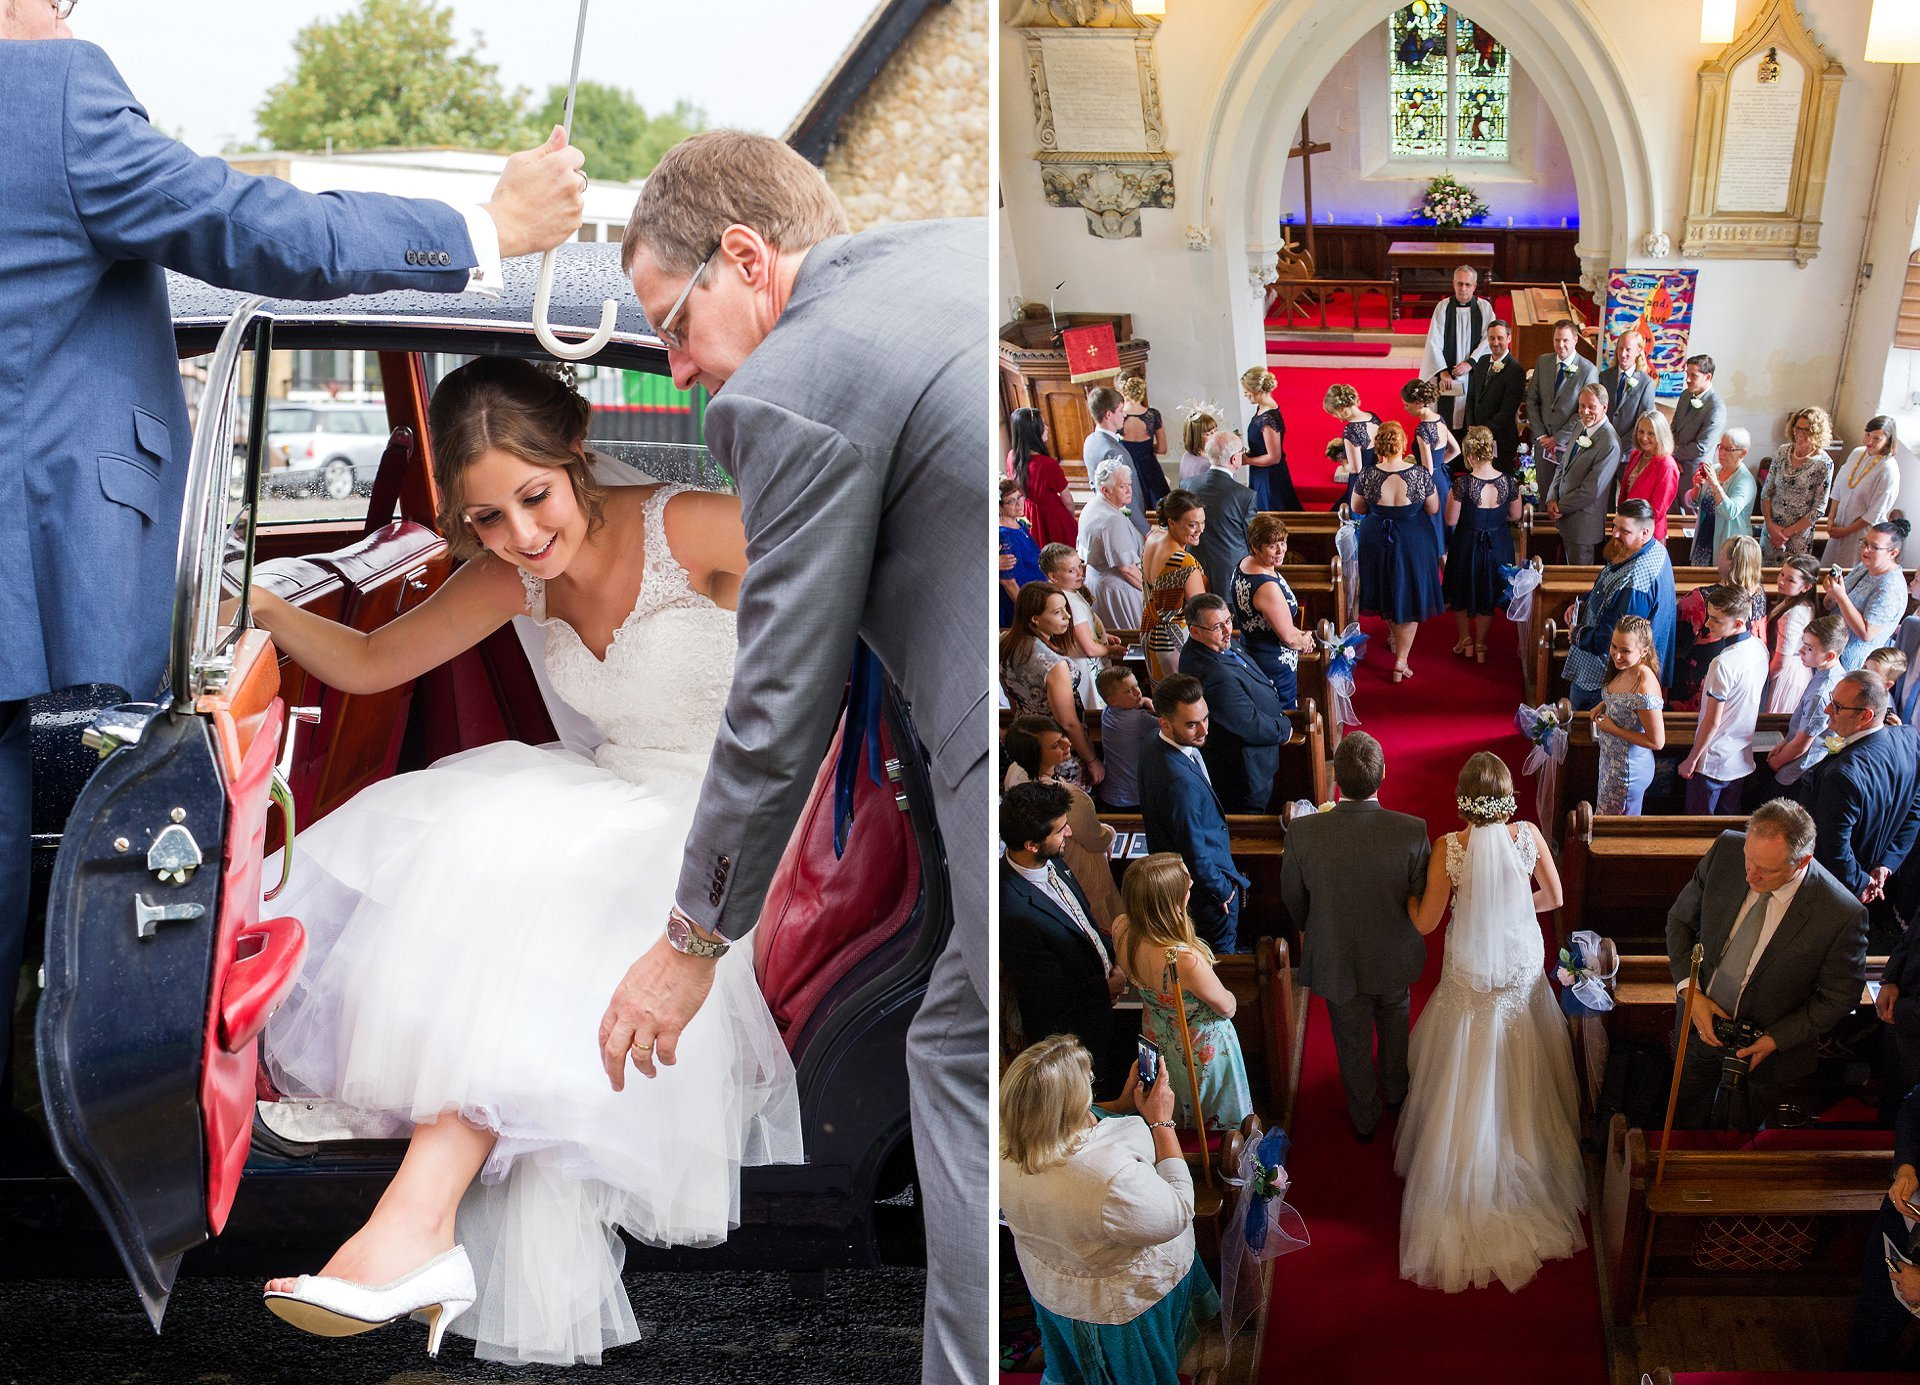 The bride emerges from her car, helped by her father, and enters the Church of St Peter's in Ditton on her Father's arm. It is very impressive from the gallery position of the Church where you are able to see the wedding dress in full flow